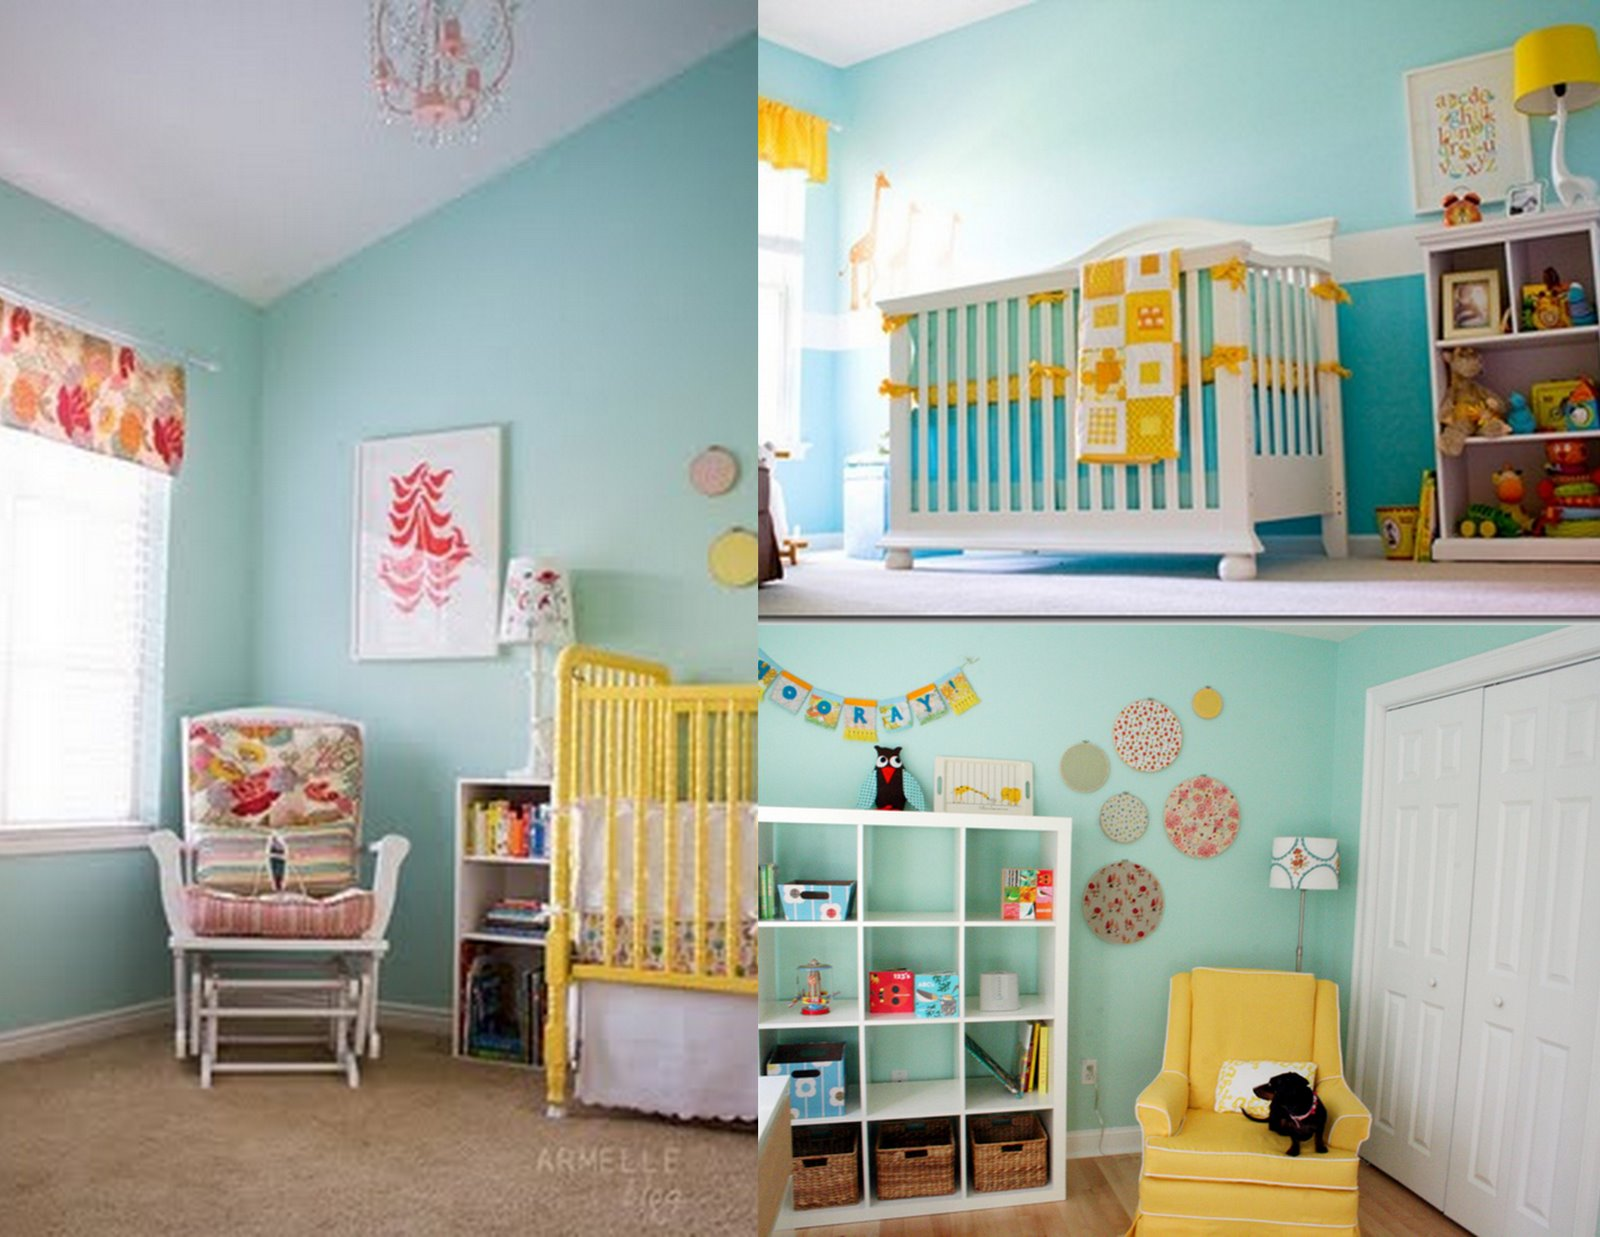 kathryn church designs nursery inspirations teal aqua